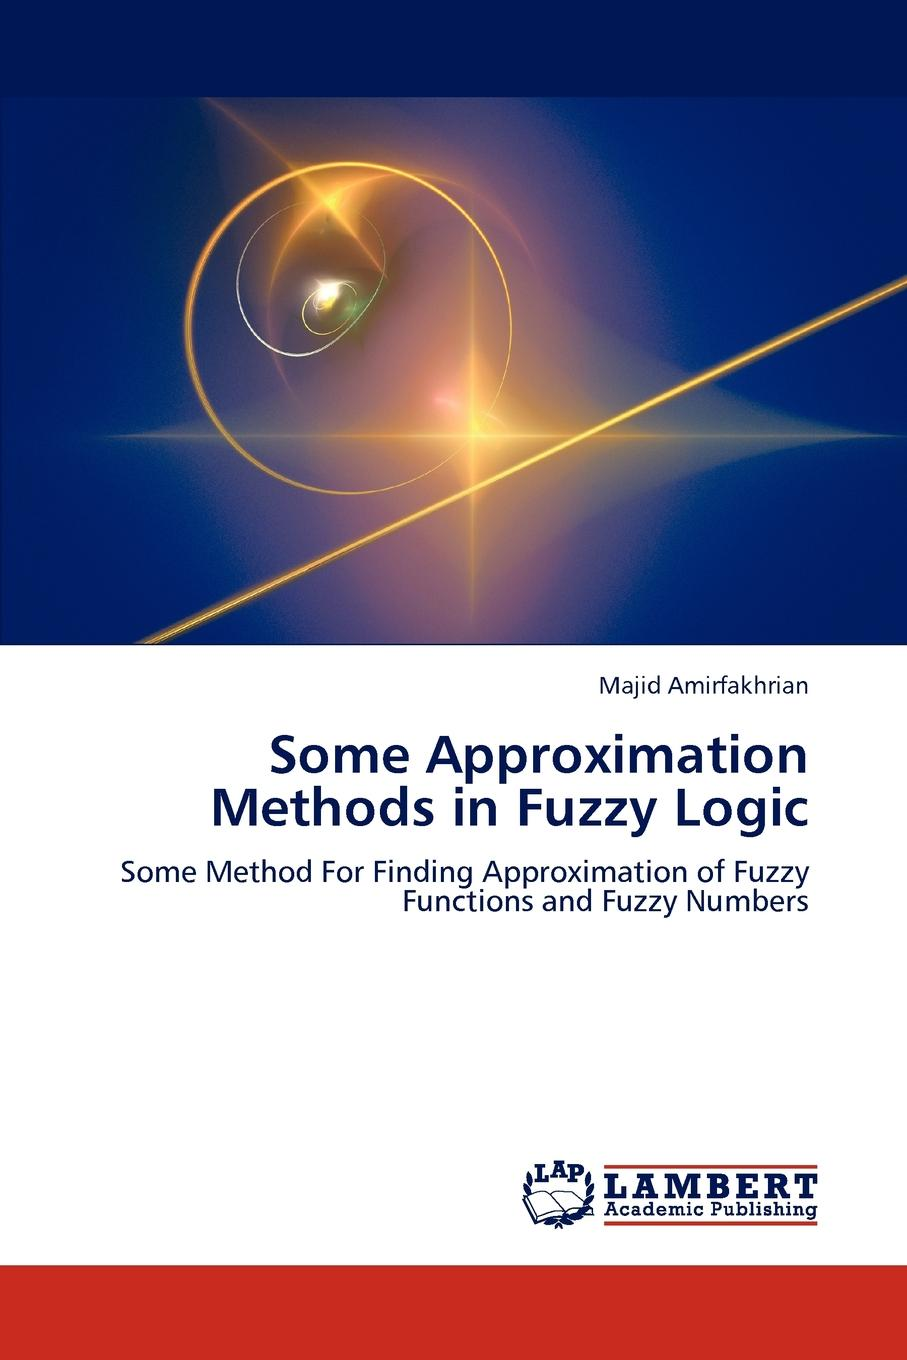 Majid Amirfakhrian Some Approximation Methods in Fuzzy Logic блесна balzer colonel fuzzy